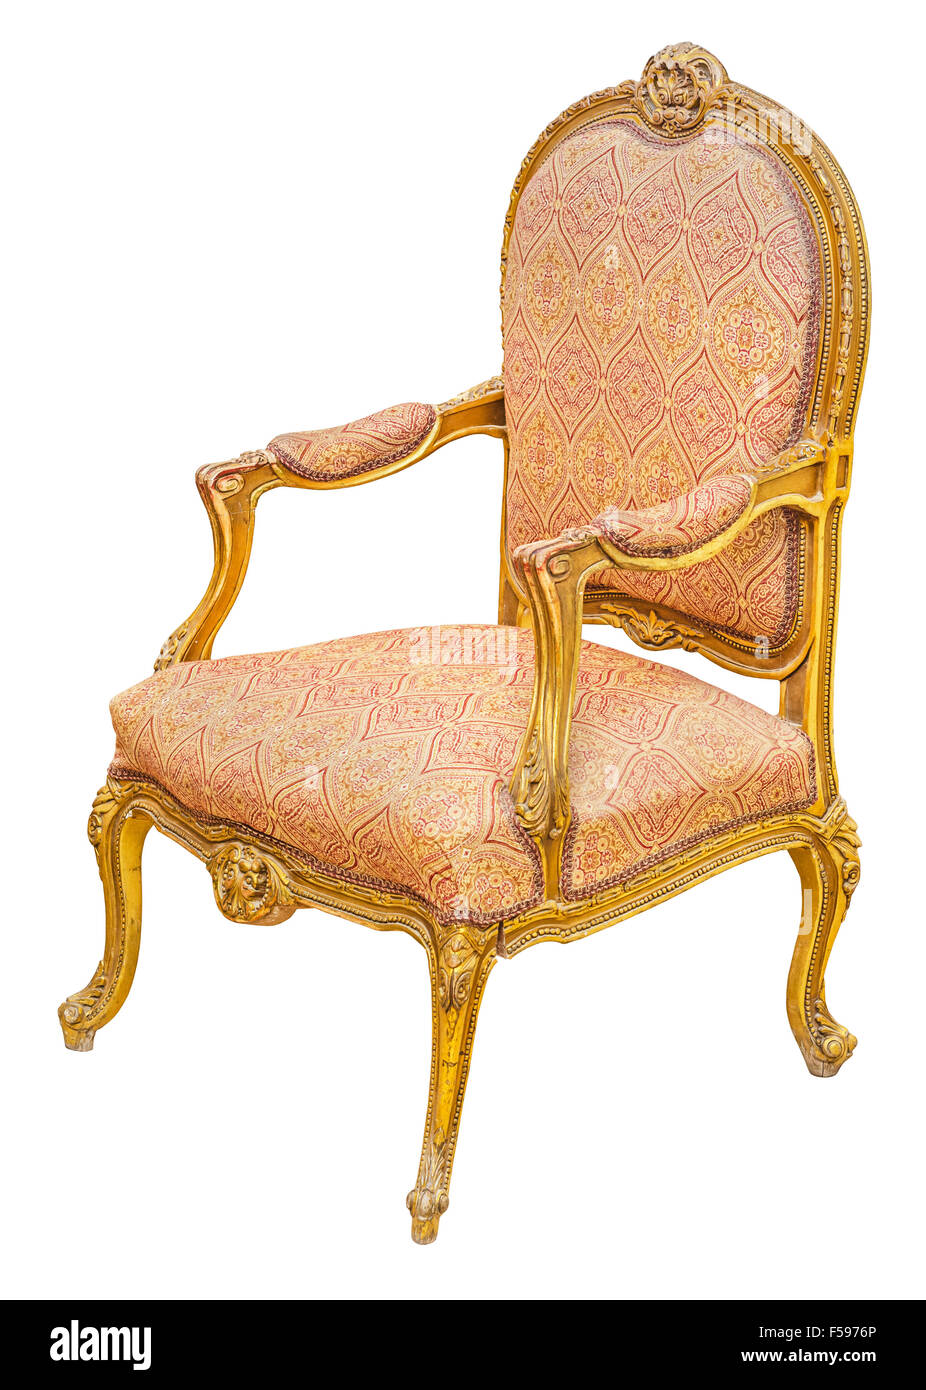 Old Antique Classic Style Vintage Gilded Wooden Chair, Isolated On White  Background. File Contains